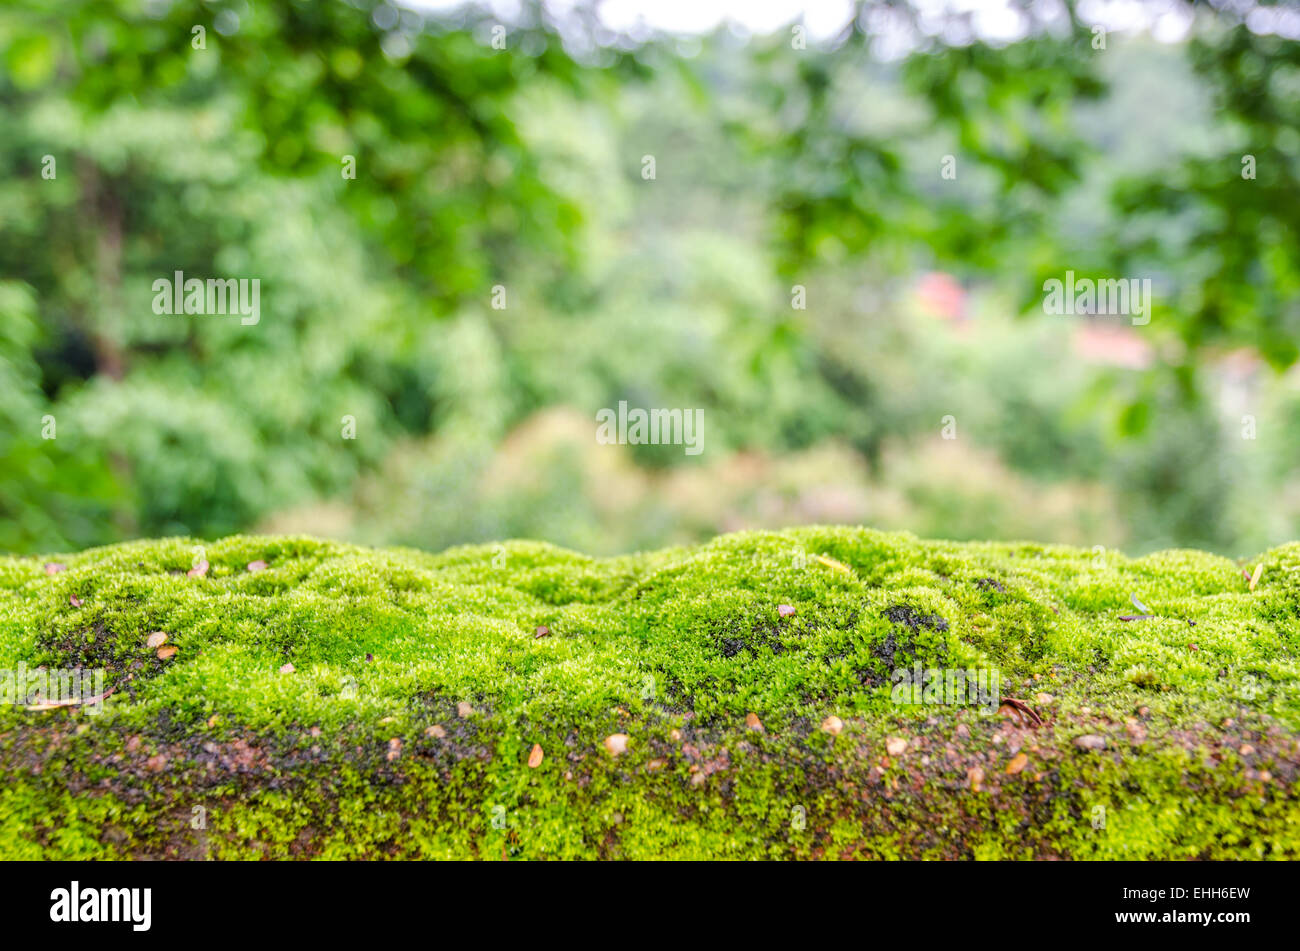 Moss, small flowerless plant that usually grow in dense green clumps or mats - Stock Image